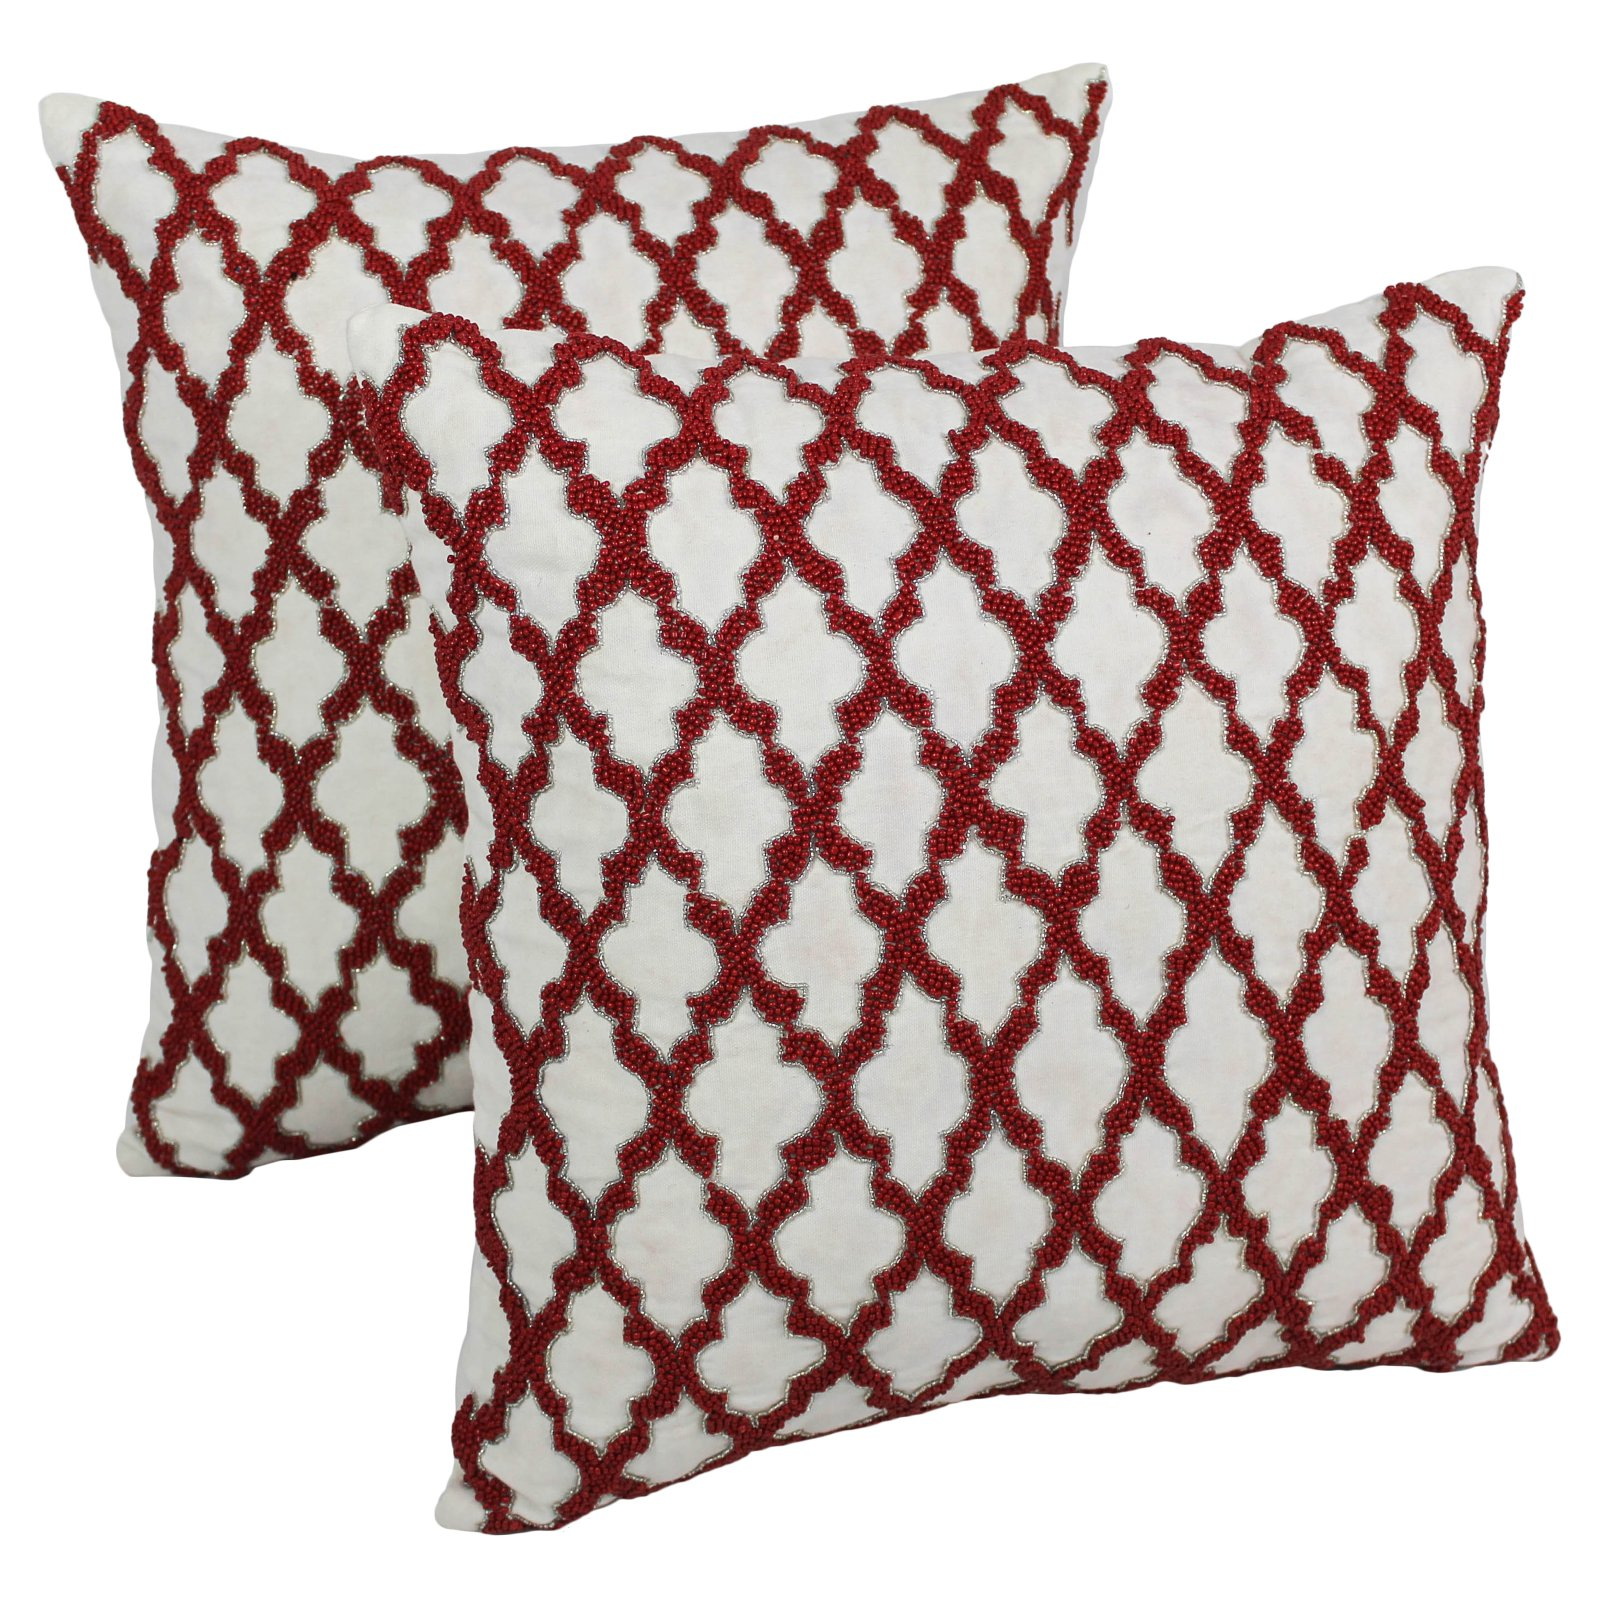 Blazing Needles 20 x 20 in. Moroccan Patterned Beaded Cotton Throw Pillow - Set of 2